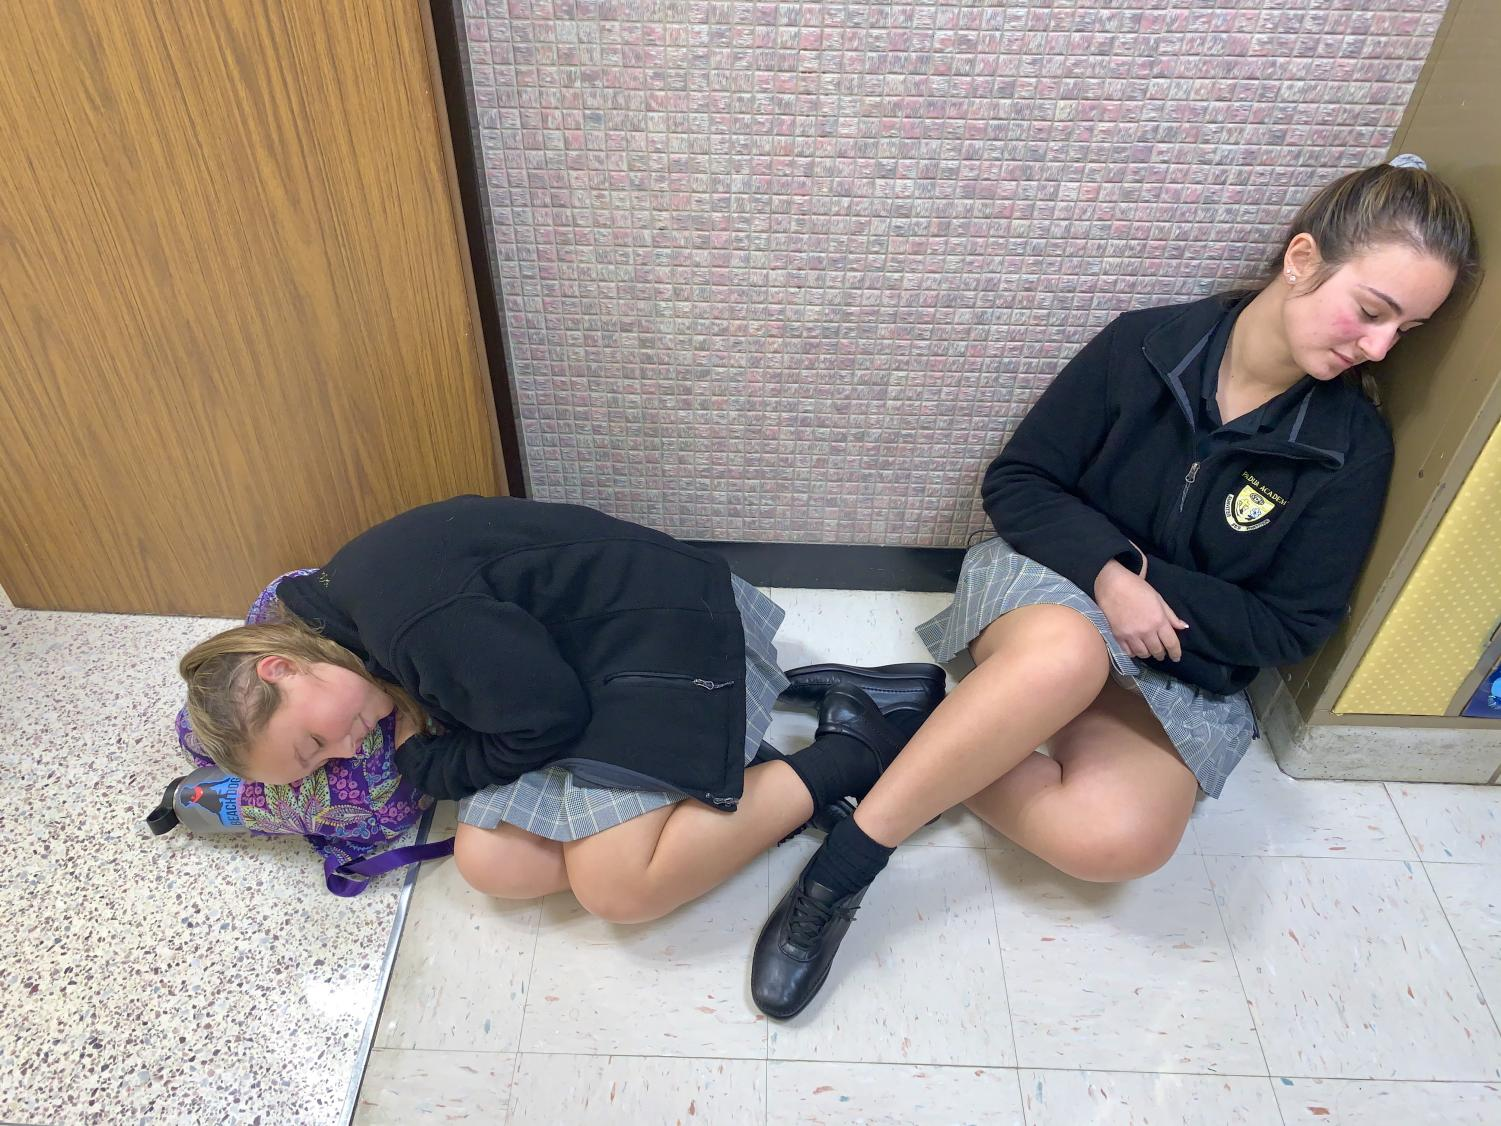 Two students asleep during class because they didn't receive enough sleep the night before.